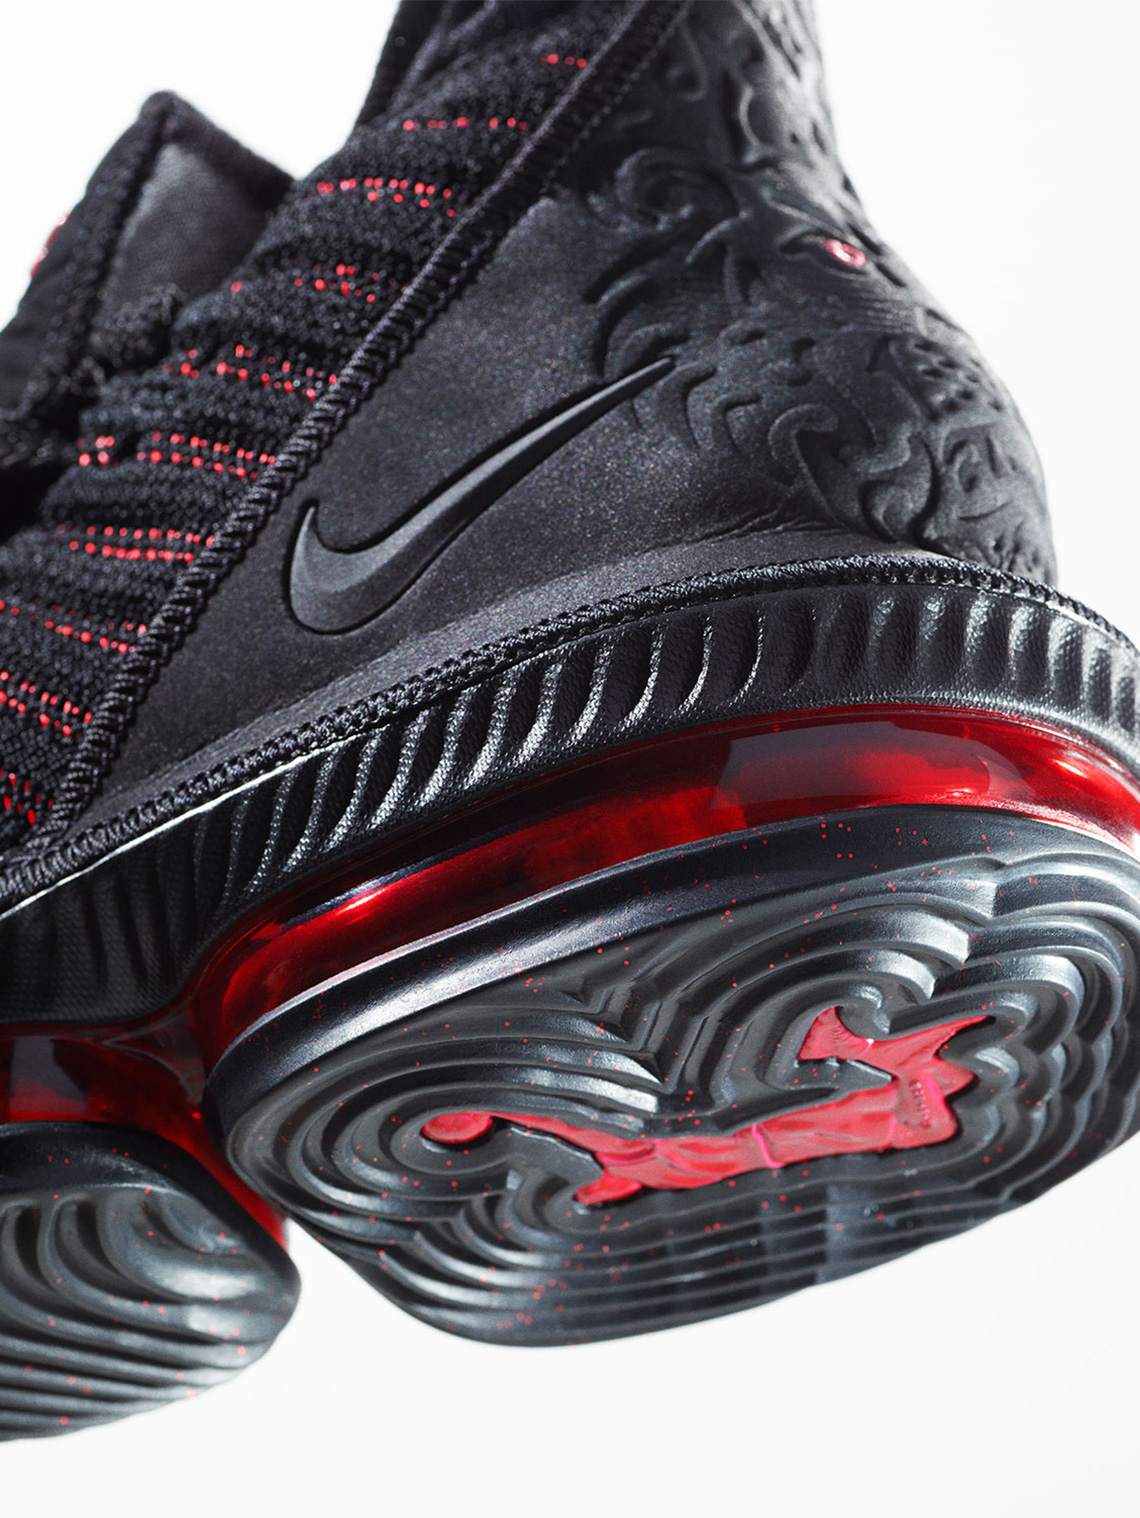 new arrival 2a44d 2917f Nike LeBron 16 Fresh Bred Black Red Release Date ...